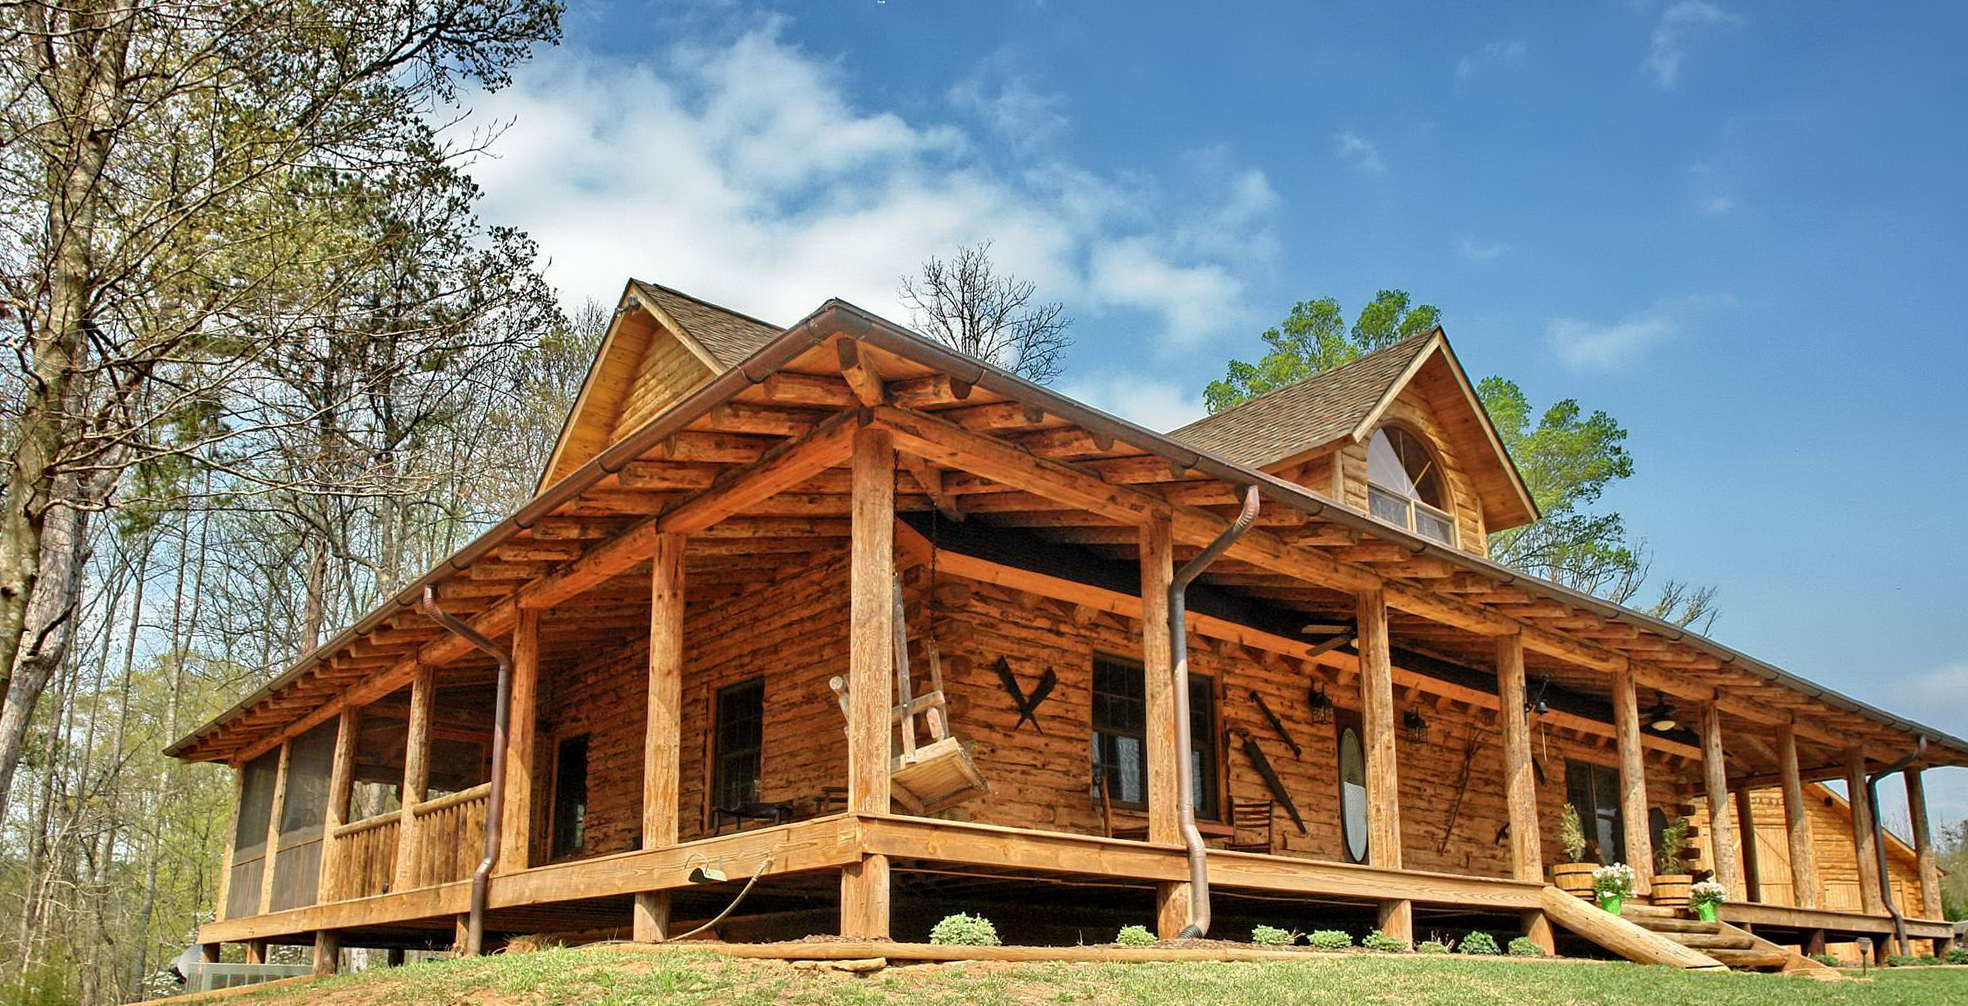 Log Cabin Design Ideas as you move up the walls alternate each successive log so that their smaller tapered ends are not all on one end of the wall once the logs reach waist Log Cabin Floor Plans With Wrap Around Porch